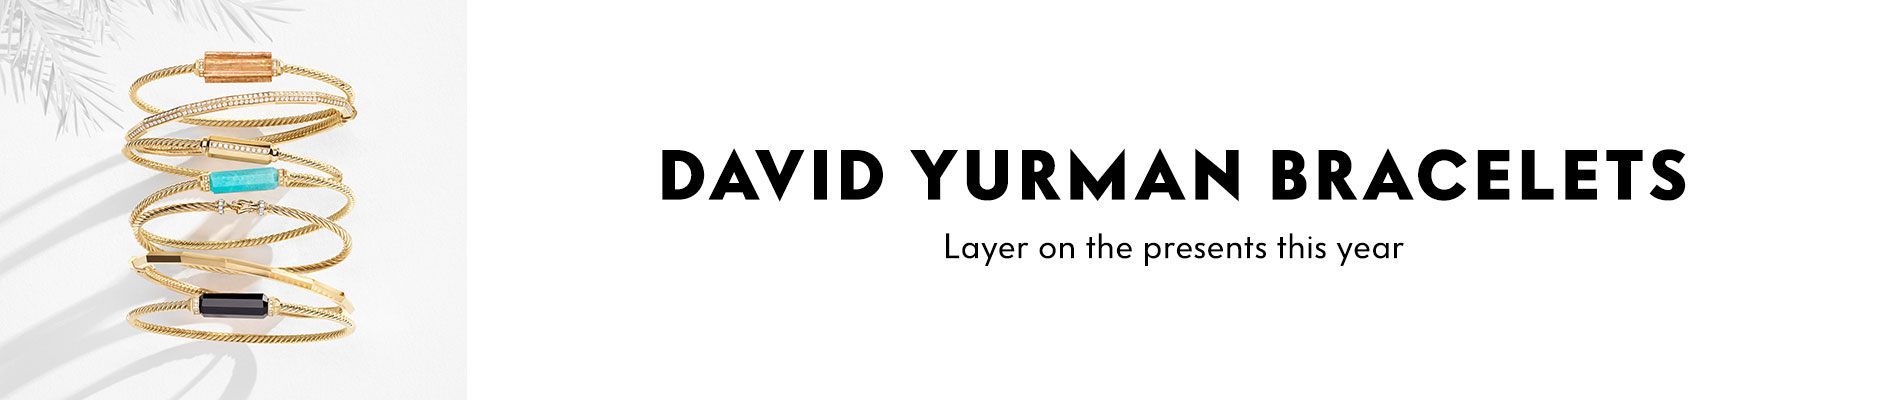 David Yurman Bracelets - Layer on the presents this year